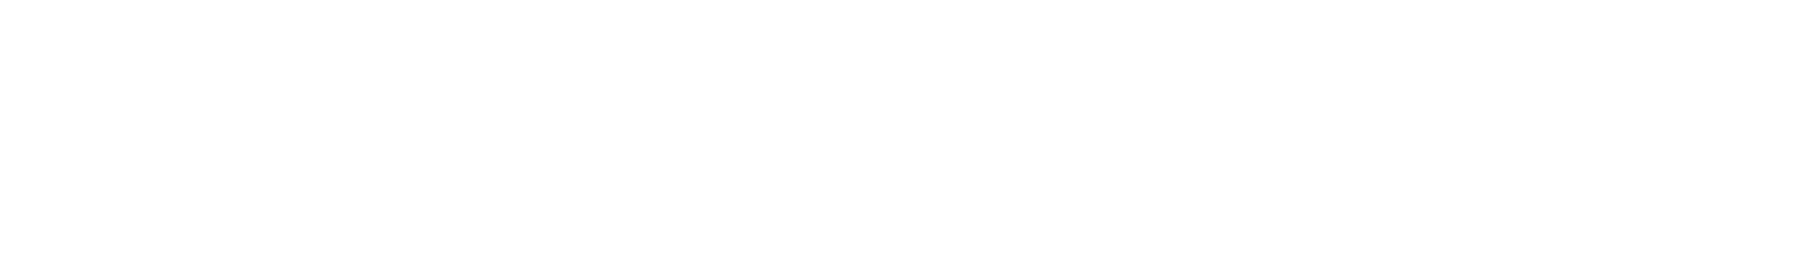 veh1 cutted sounds   042